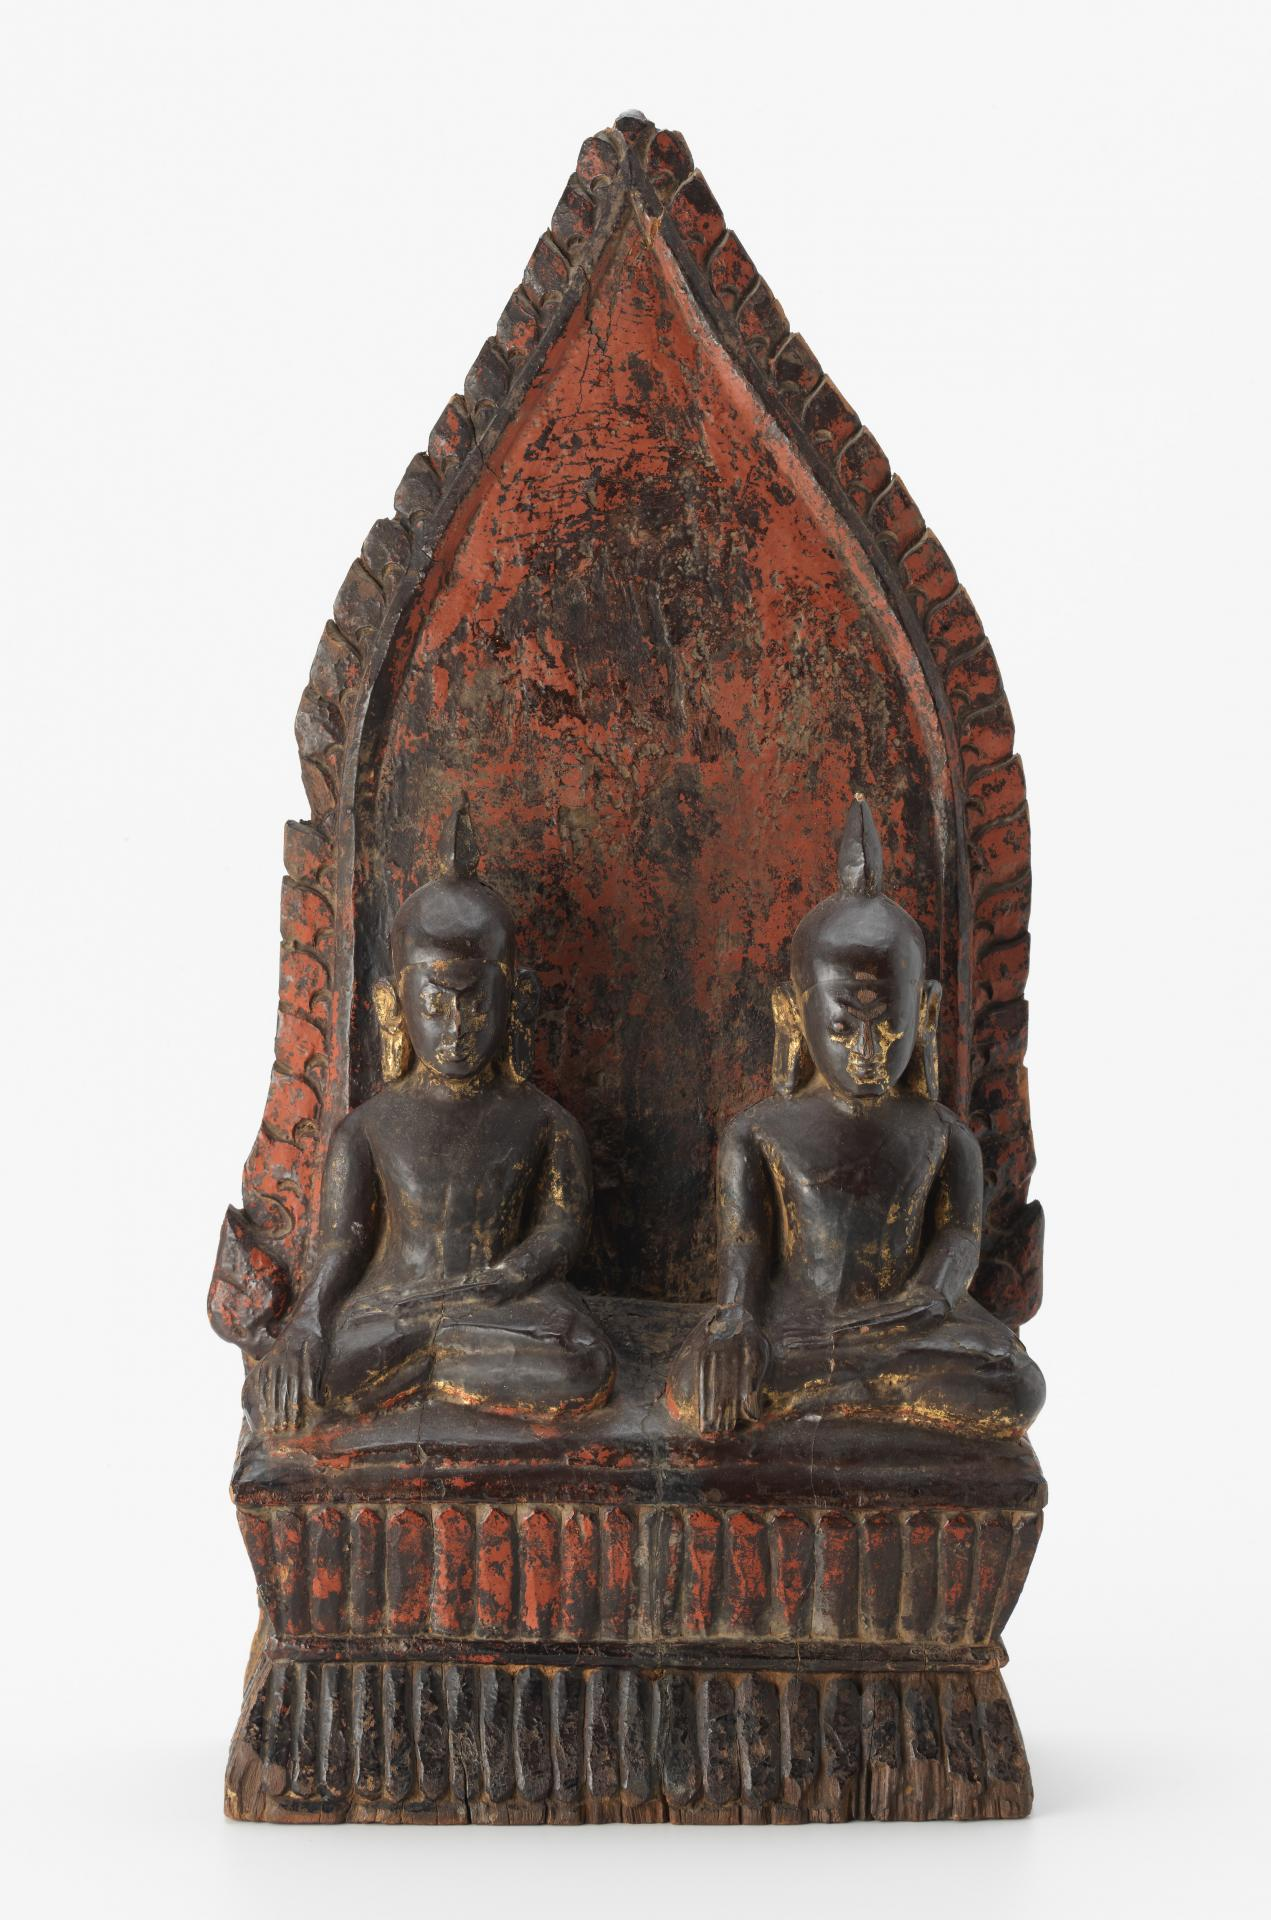 Pair of seated Buddhas